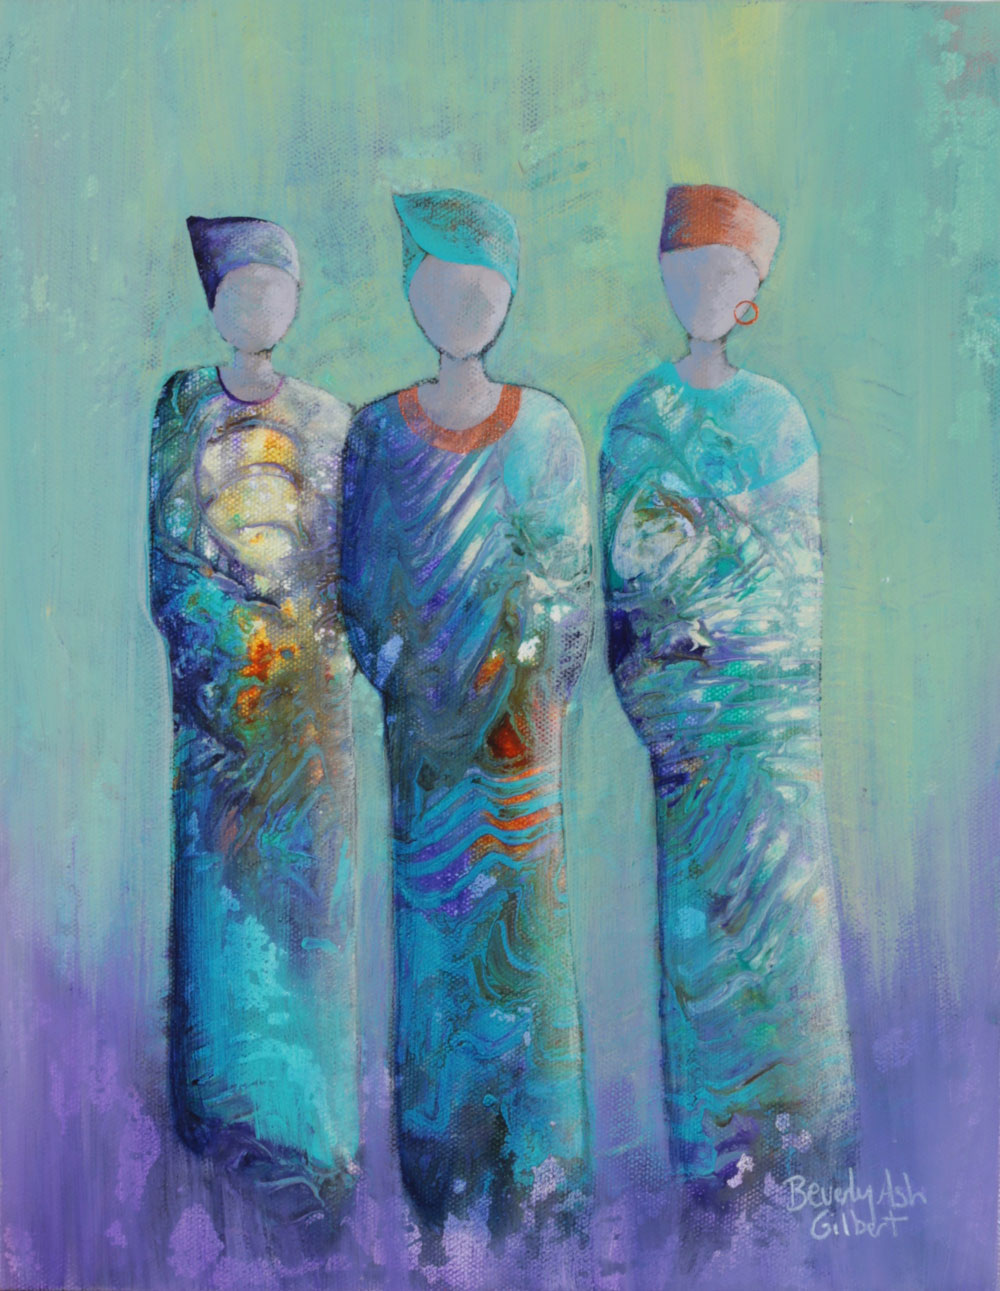 Quiet Elegance - It Takes A Village Painting Collection - Beverly Ash Gilbert